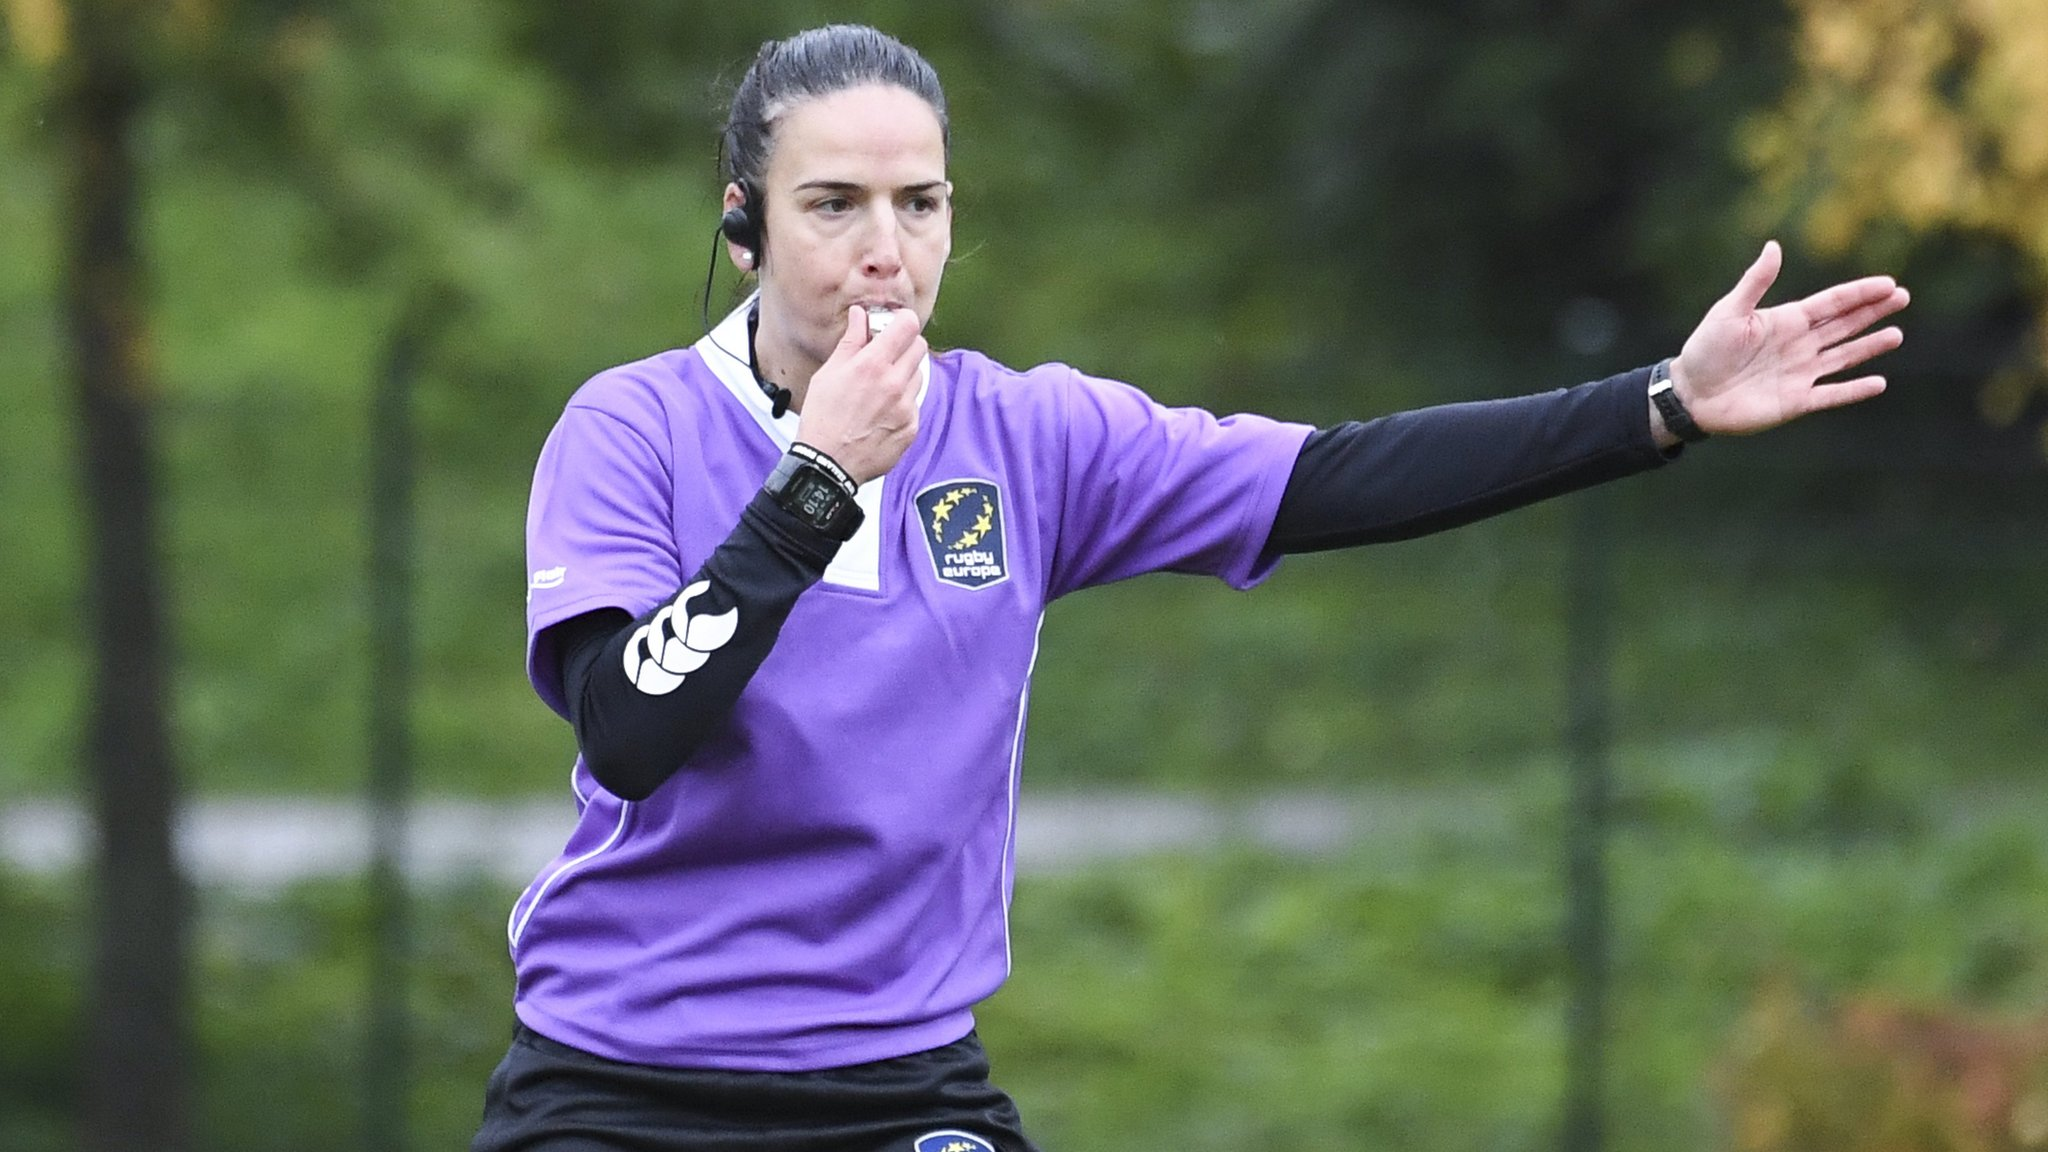 Female referee Nievas hopes to 'create a pathway' for other women